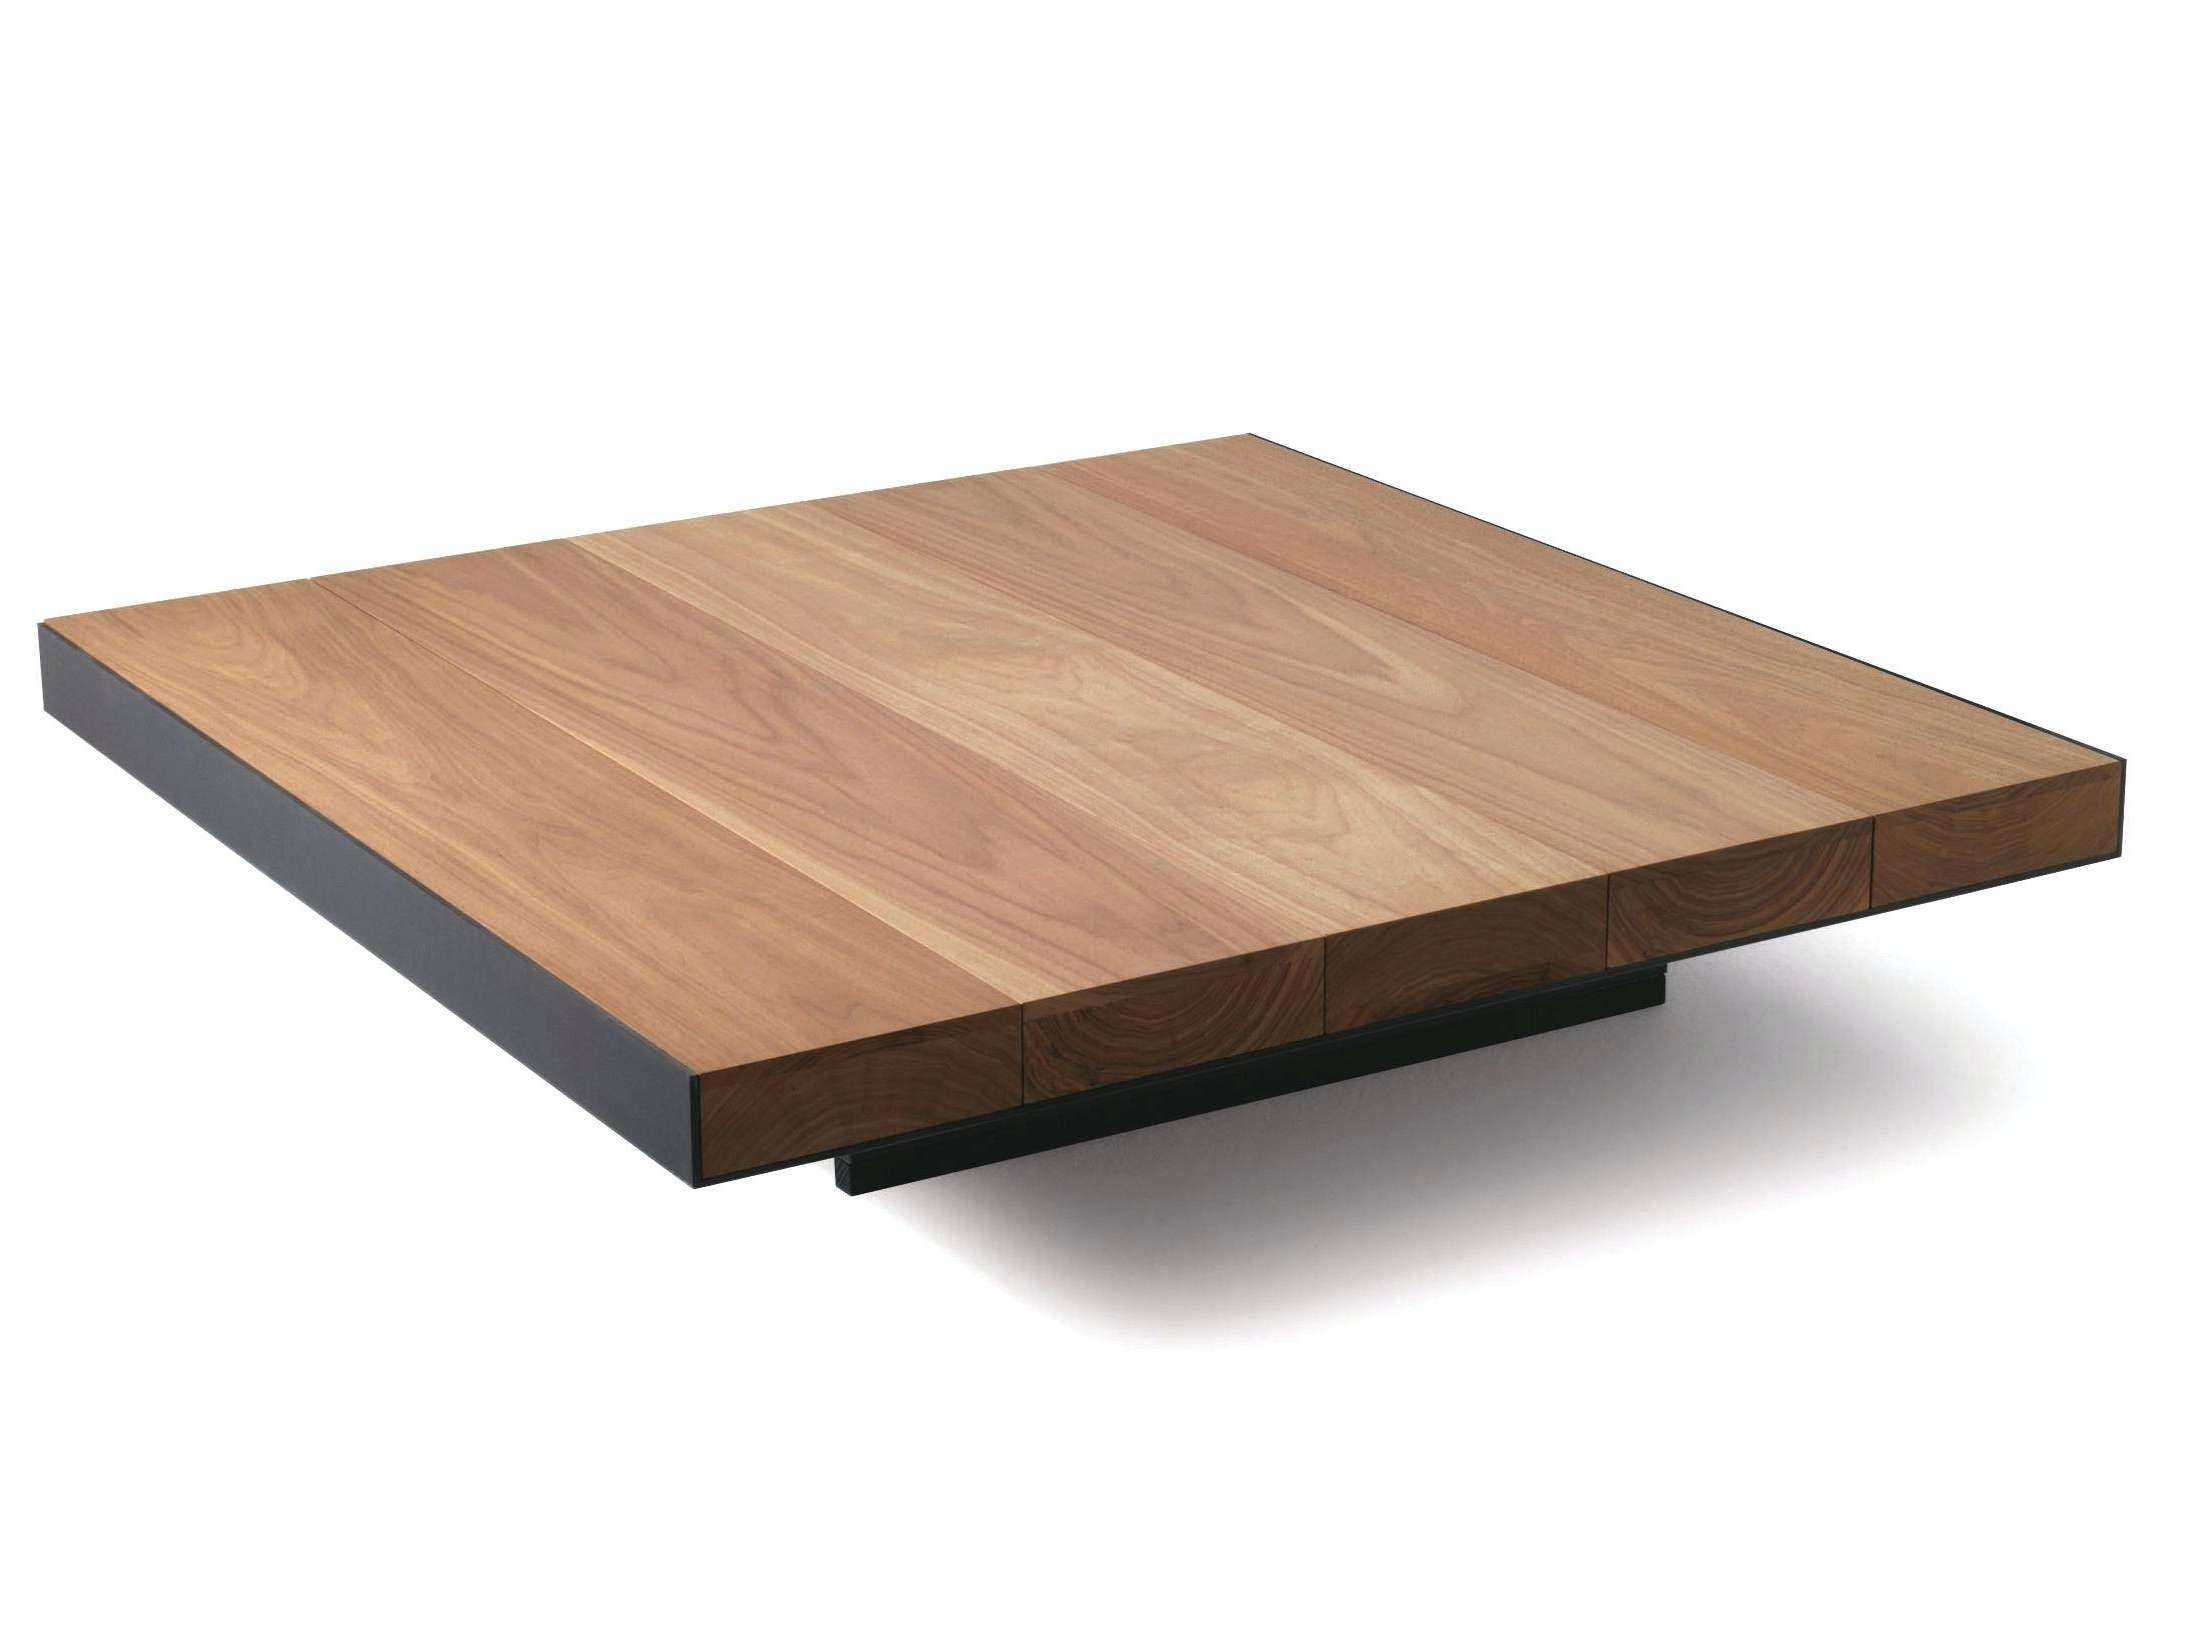 Most Current Large Low Wood Coffee Tables With Regard To Coffee Table 2017 Popular Large Low Wood Coffee Tables Square (View 12 of 20)